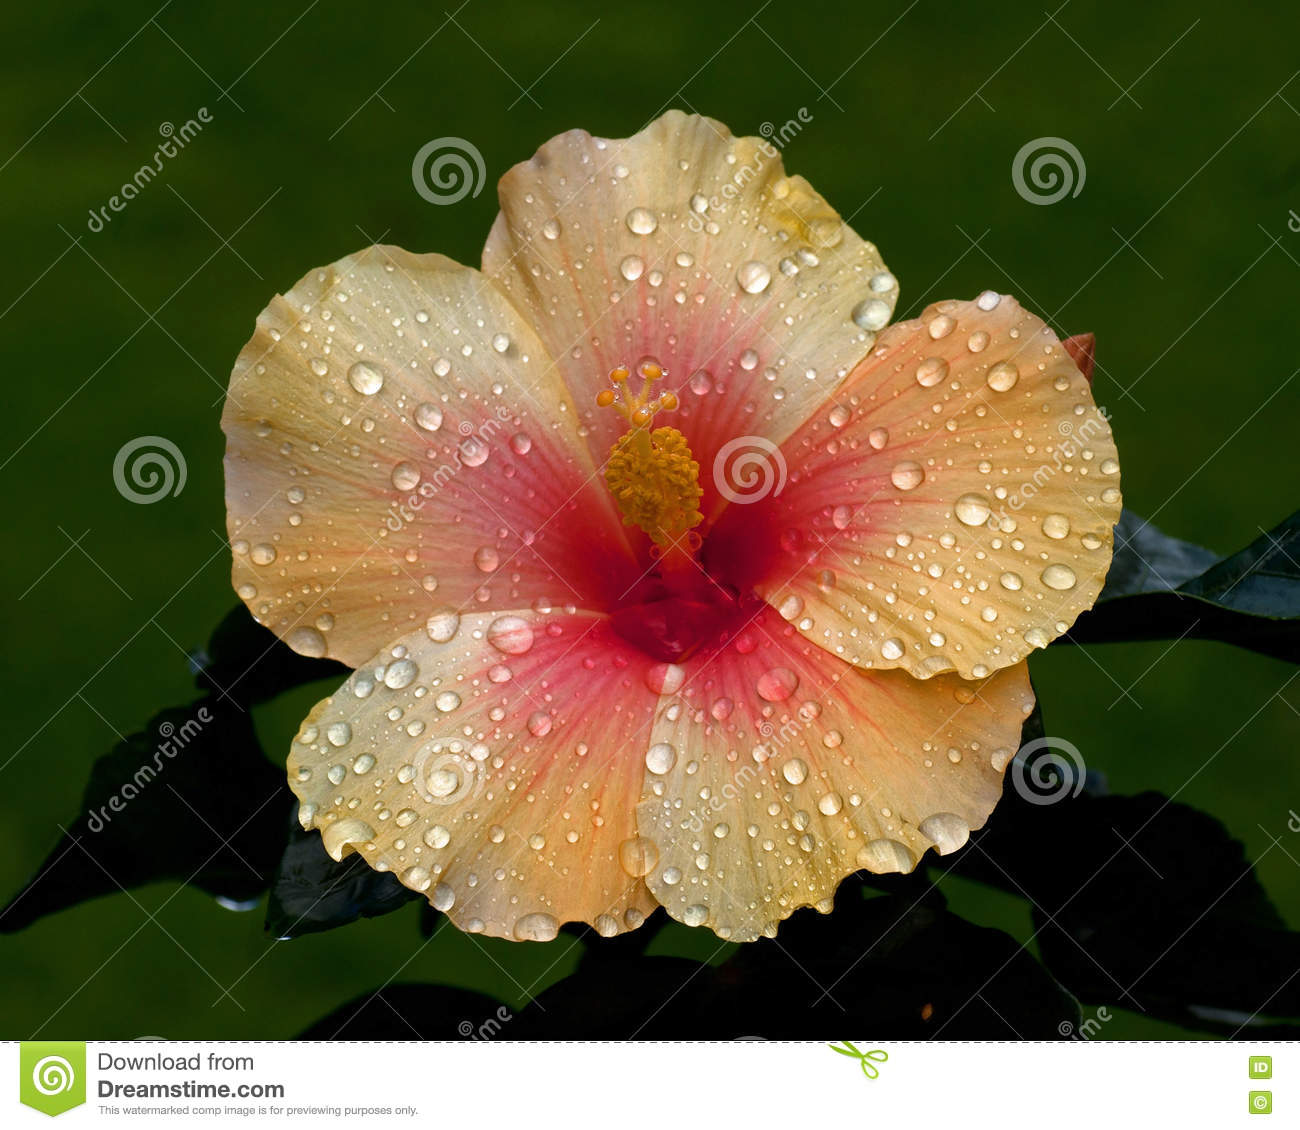 Beautiful Places In Malaysia With Description: Hibiscus Royalty-Free Stock Photography